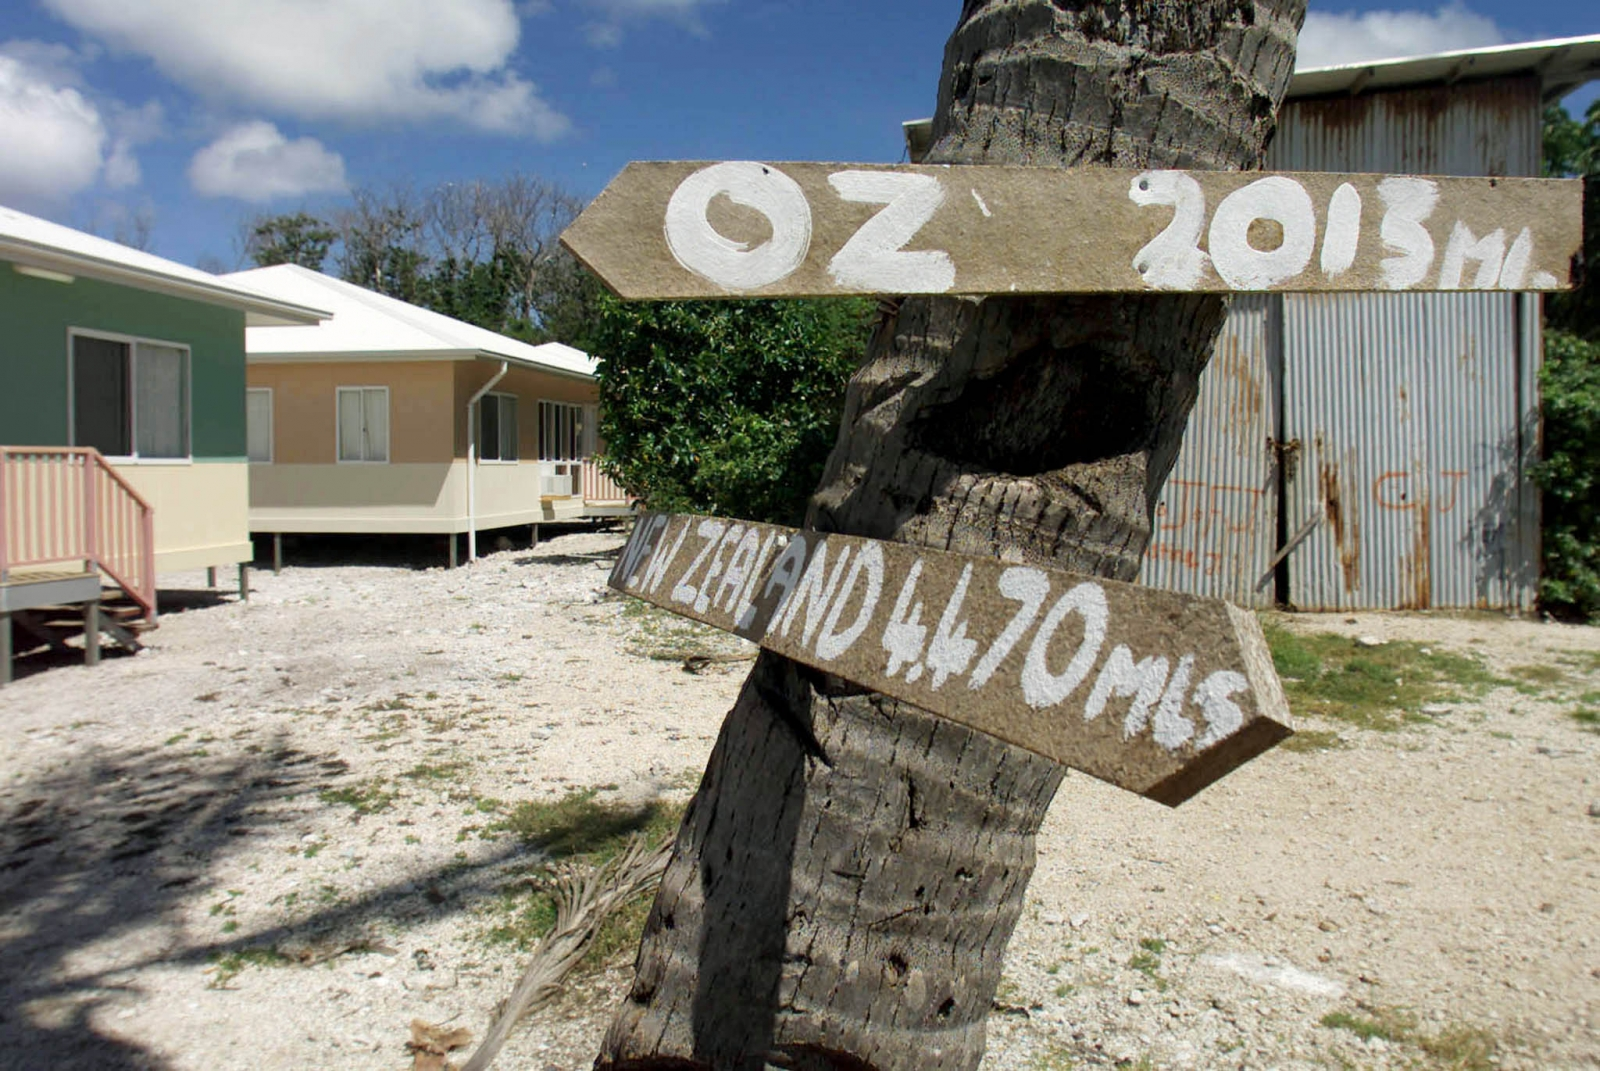 The Nauru Anaoe Village houses hundreds of asylum seekers, who will be relocated to Cambodia following the new agreement